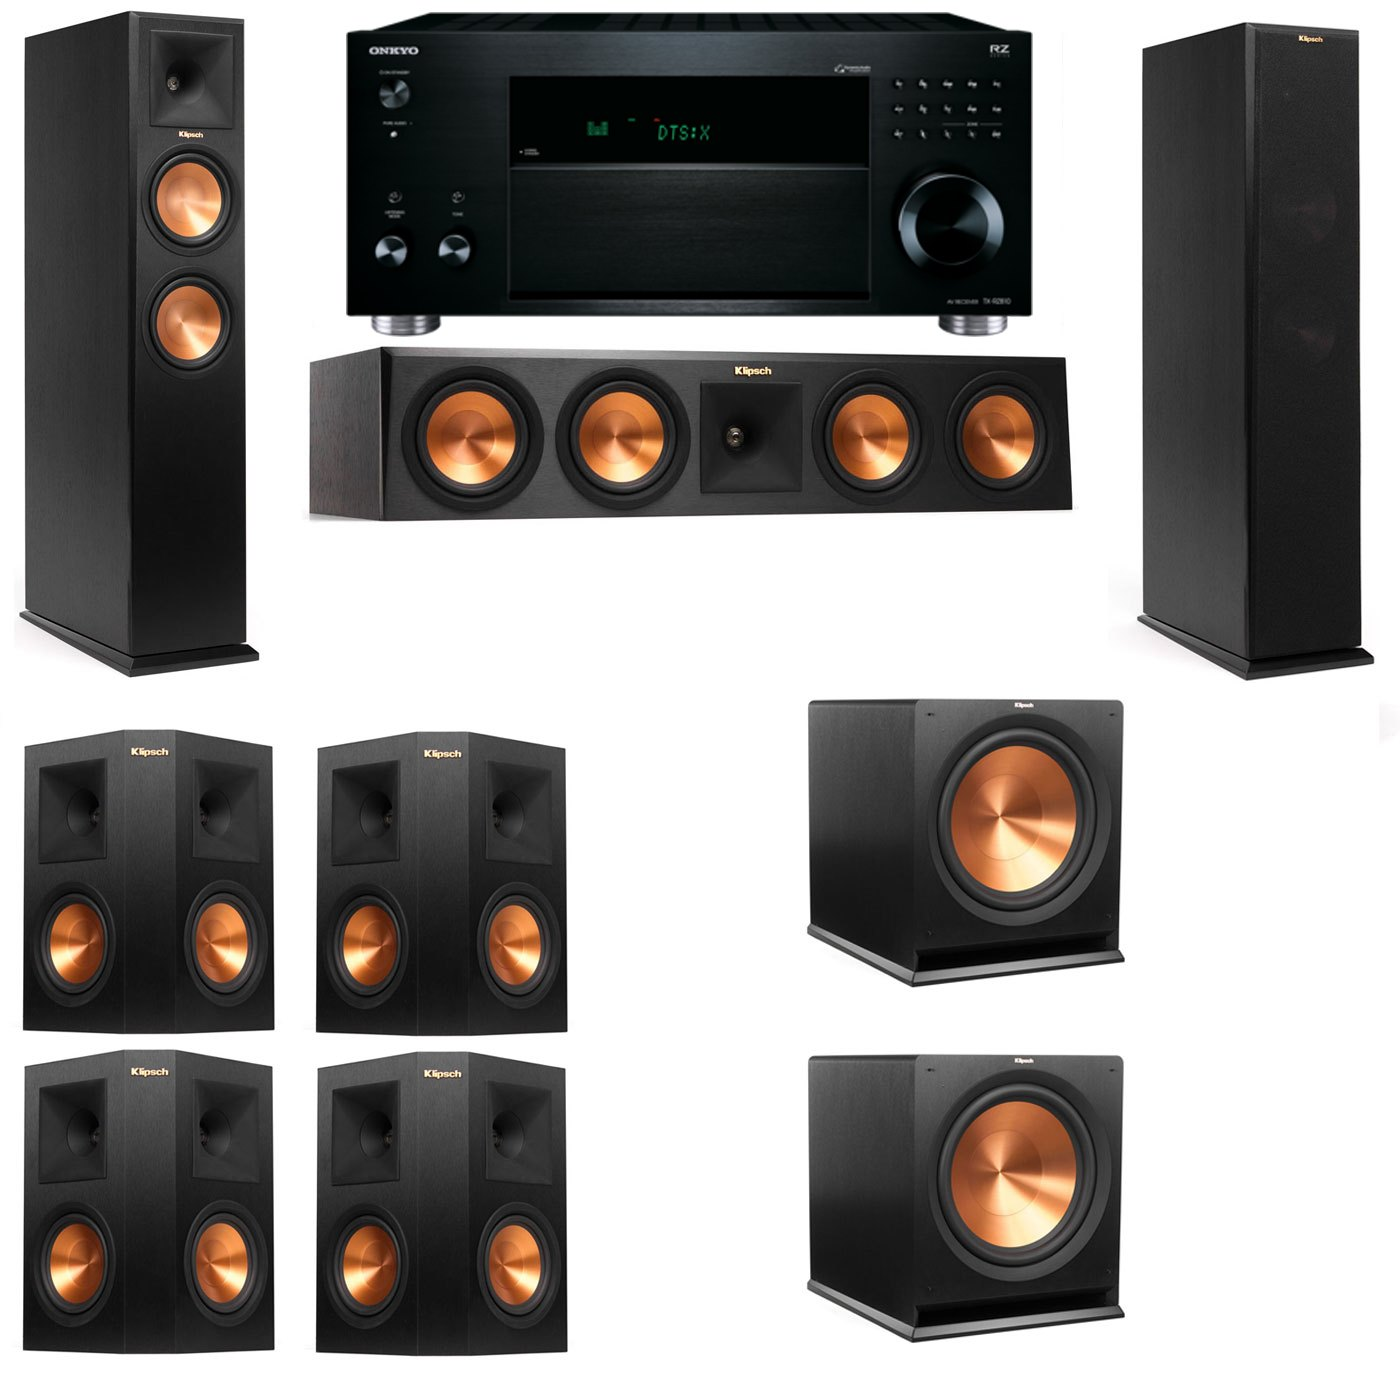 Klipsch RP-260F Tower Speakers-7.2-Onkyo TX-RZ810